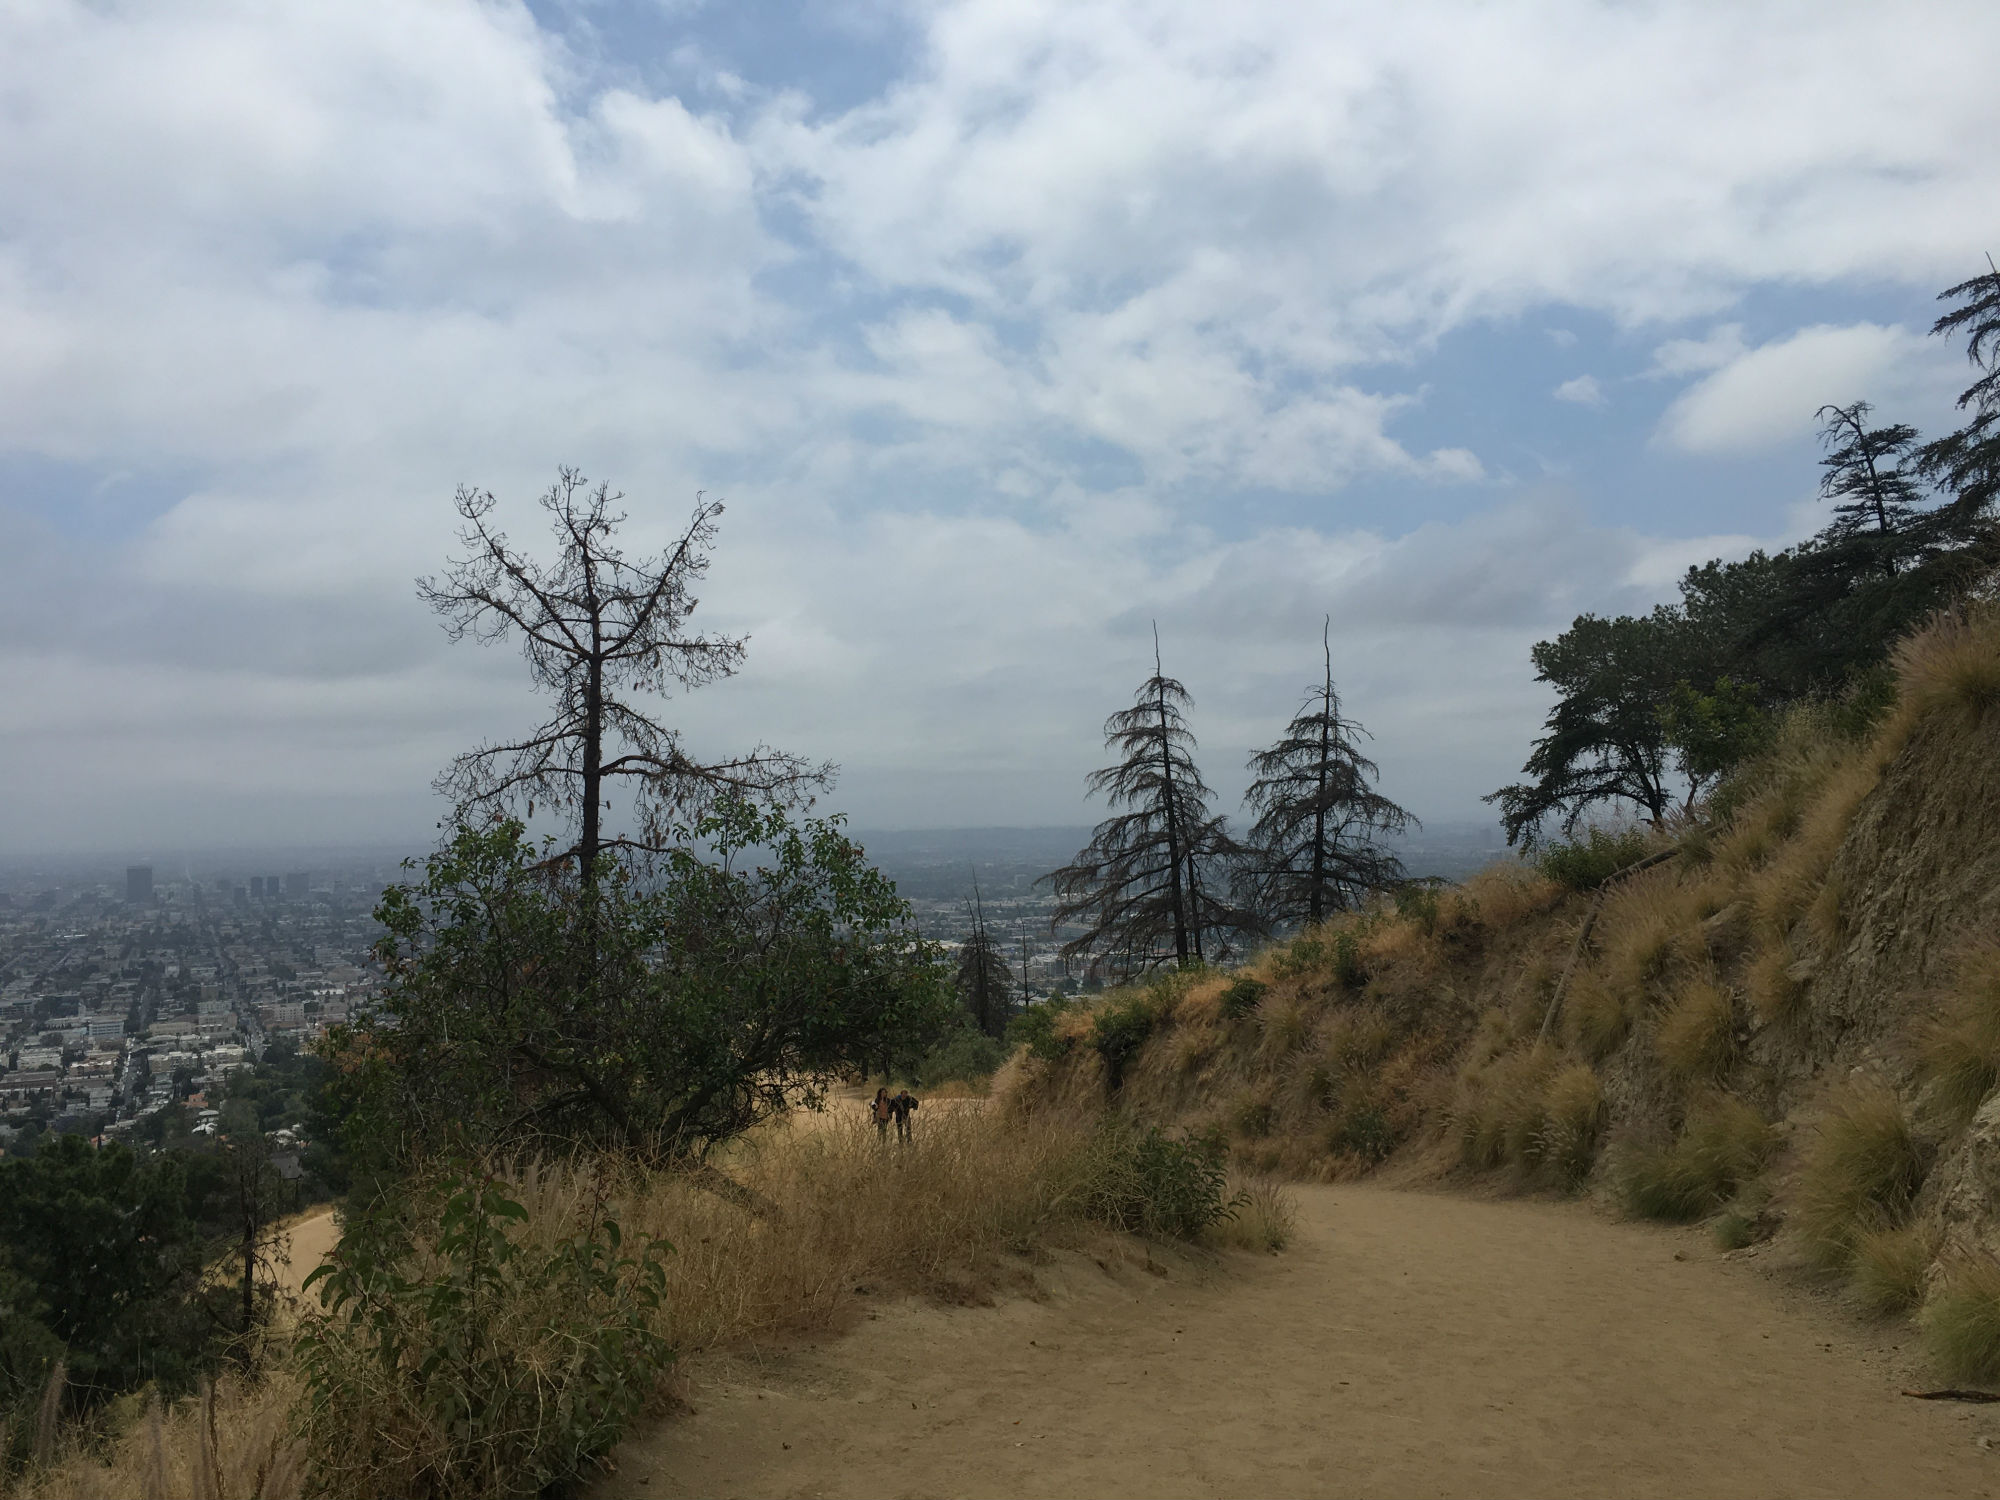 There are many hiking opportunities in LA.